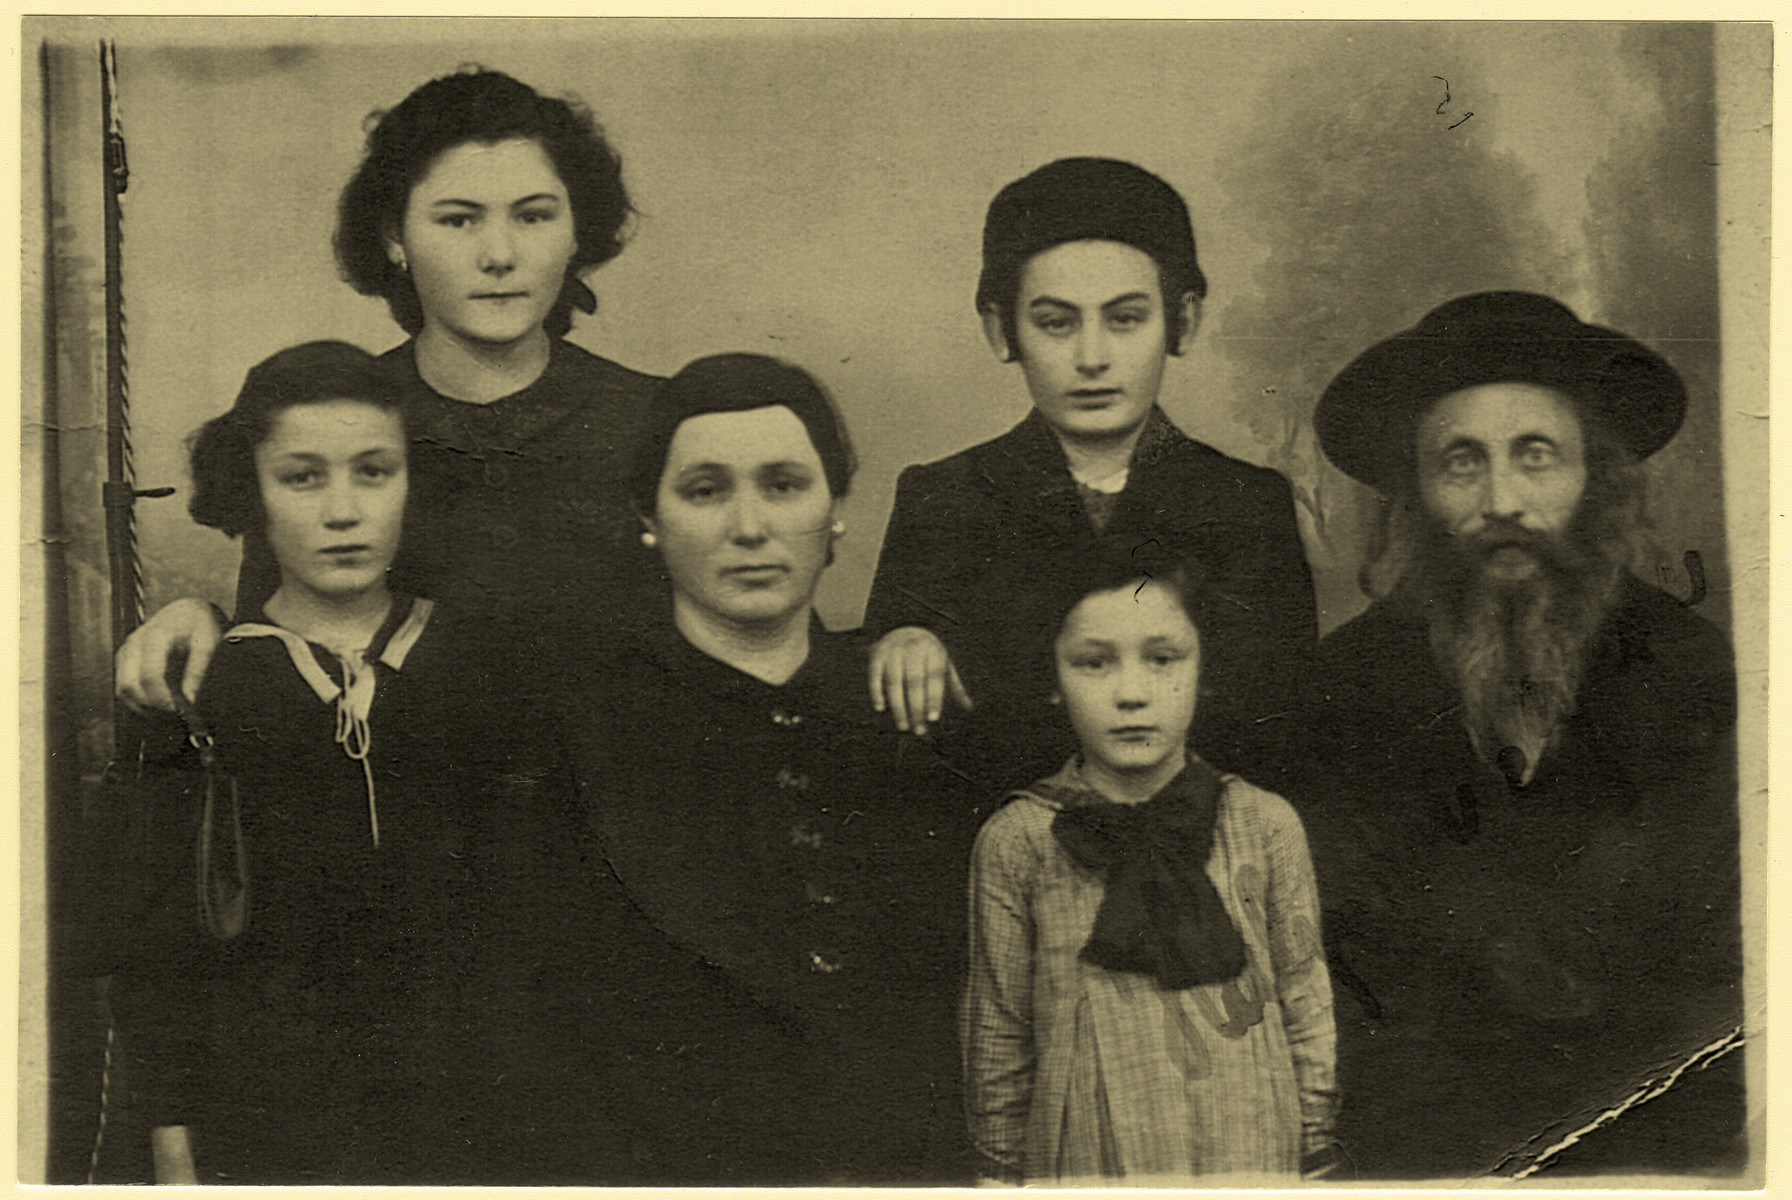 Prewar studio portrait of the Halpern family.  Pictured from left to right are Pnina, Leah, Malka, Meir, Miriam and Yitzchok Halpern.